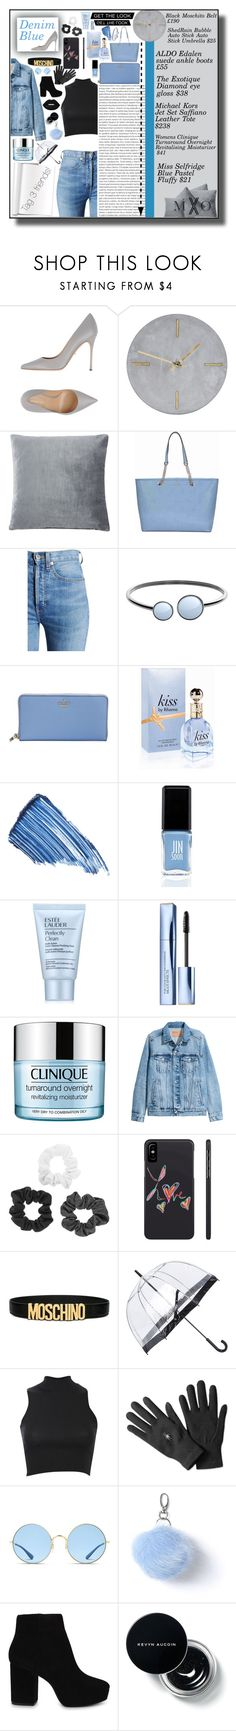 """Denim Blue"" by mxogirl ❤ liked on Polyvore featuring Oris, Sergio Rossi, House Doctor, Magaschoni, Michael Kors, RE/DONE, Skagen, Kate Spade, Sisley and JINsoon"